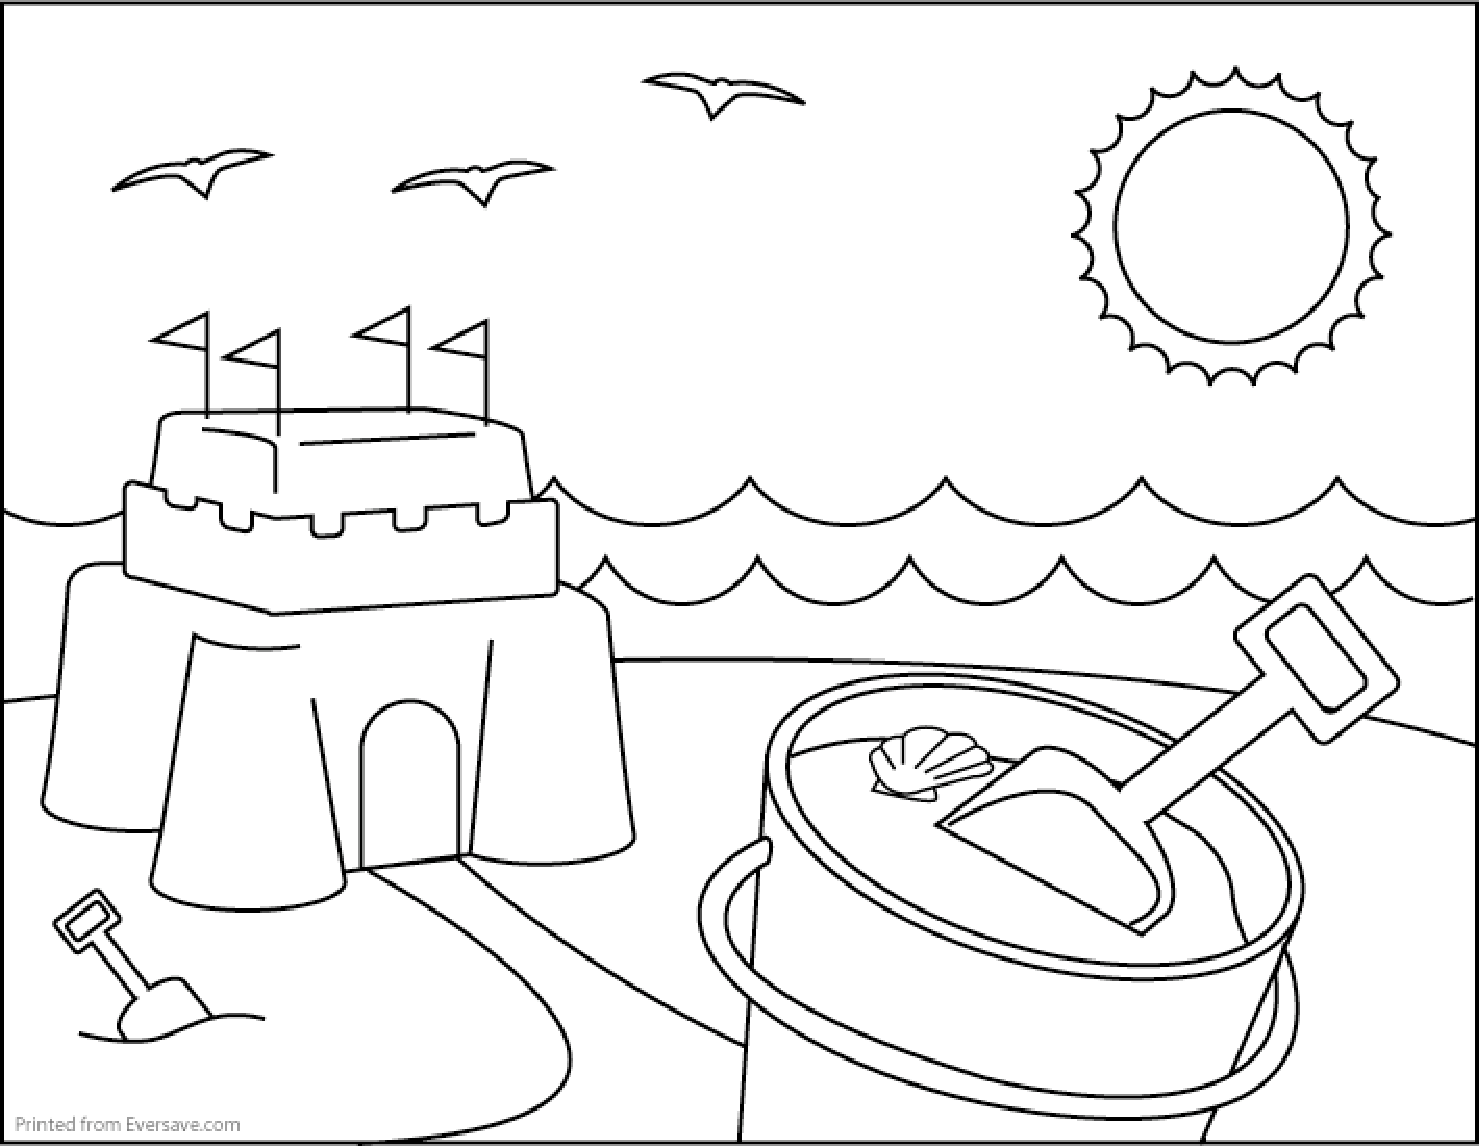 Summertime Coloring Pages To Download And Print For Free